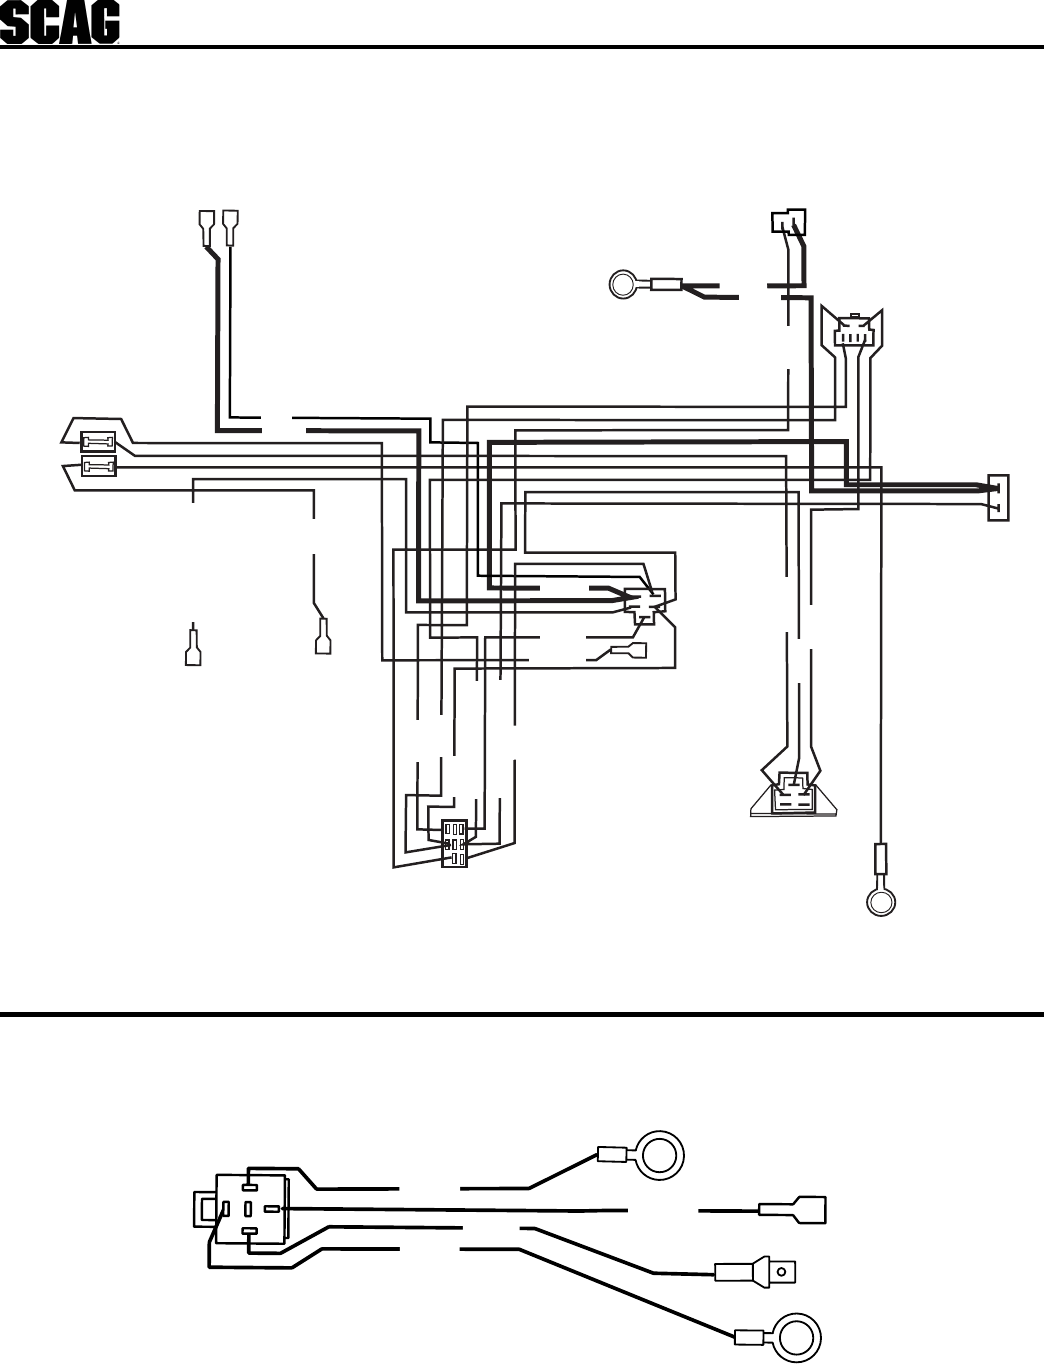 hight resolution of scag wiring harnes diagram